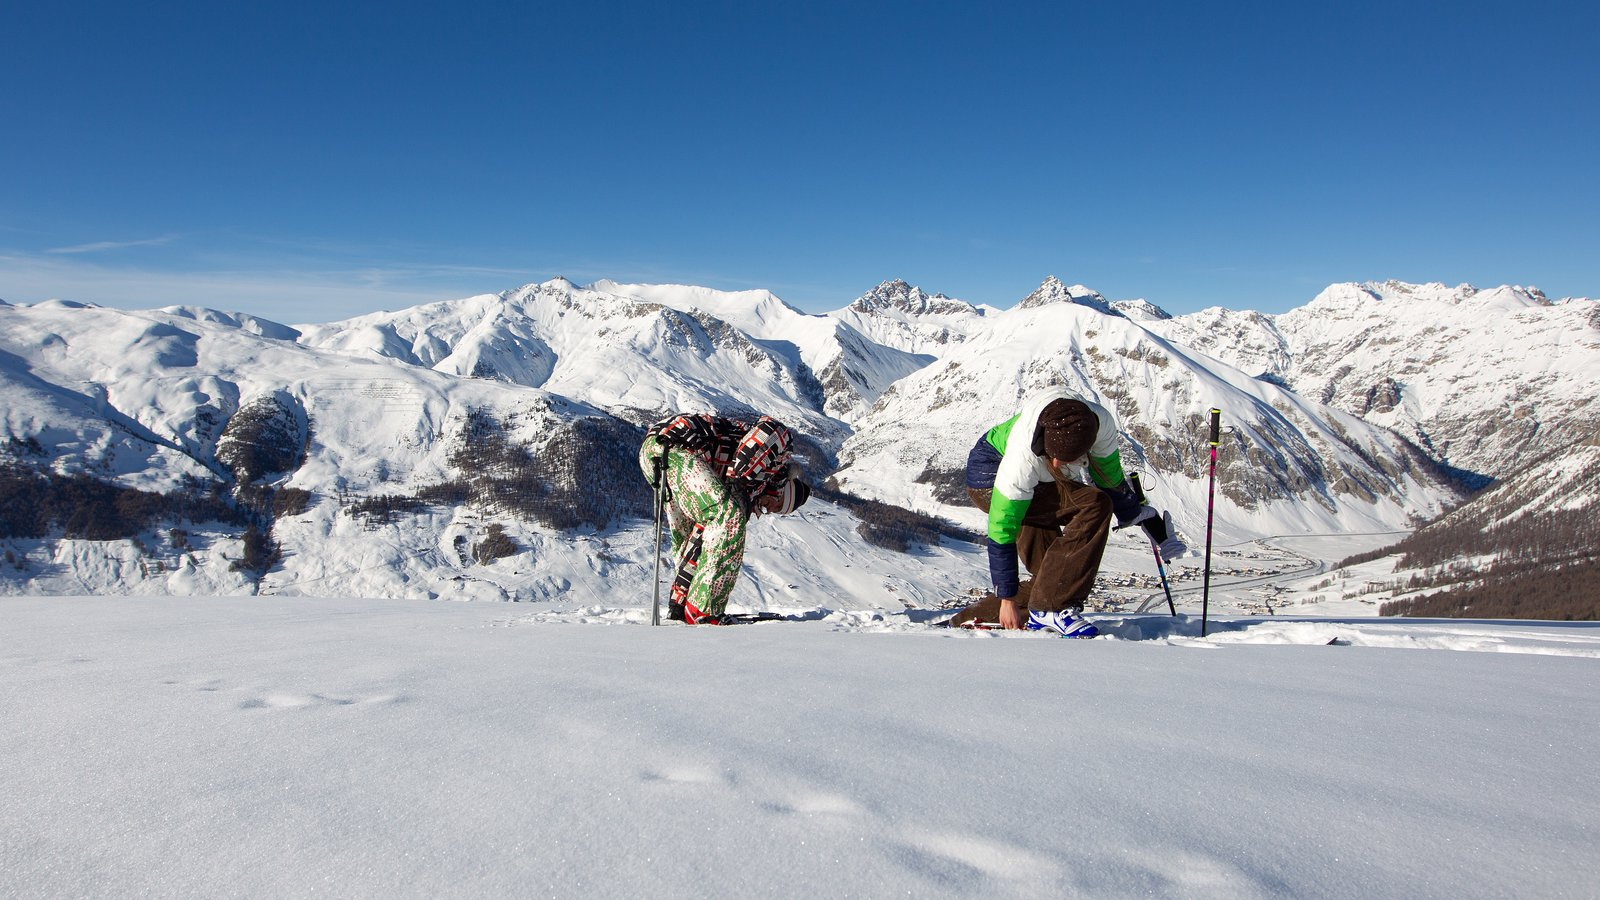 Livigno Ski Area which includes tranquil scenes, landscape views and snow